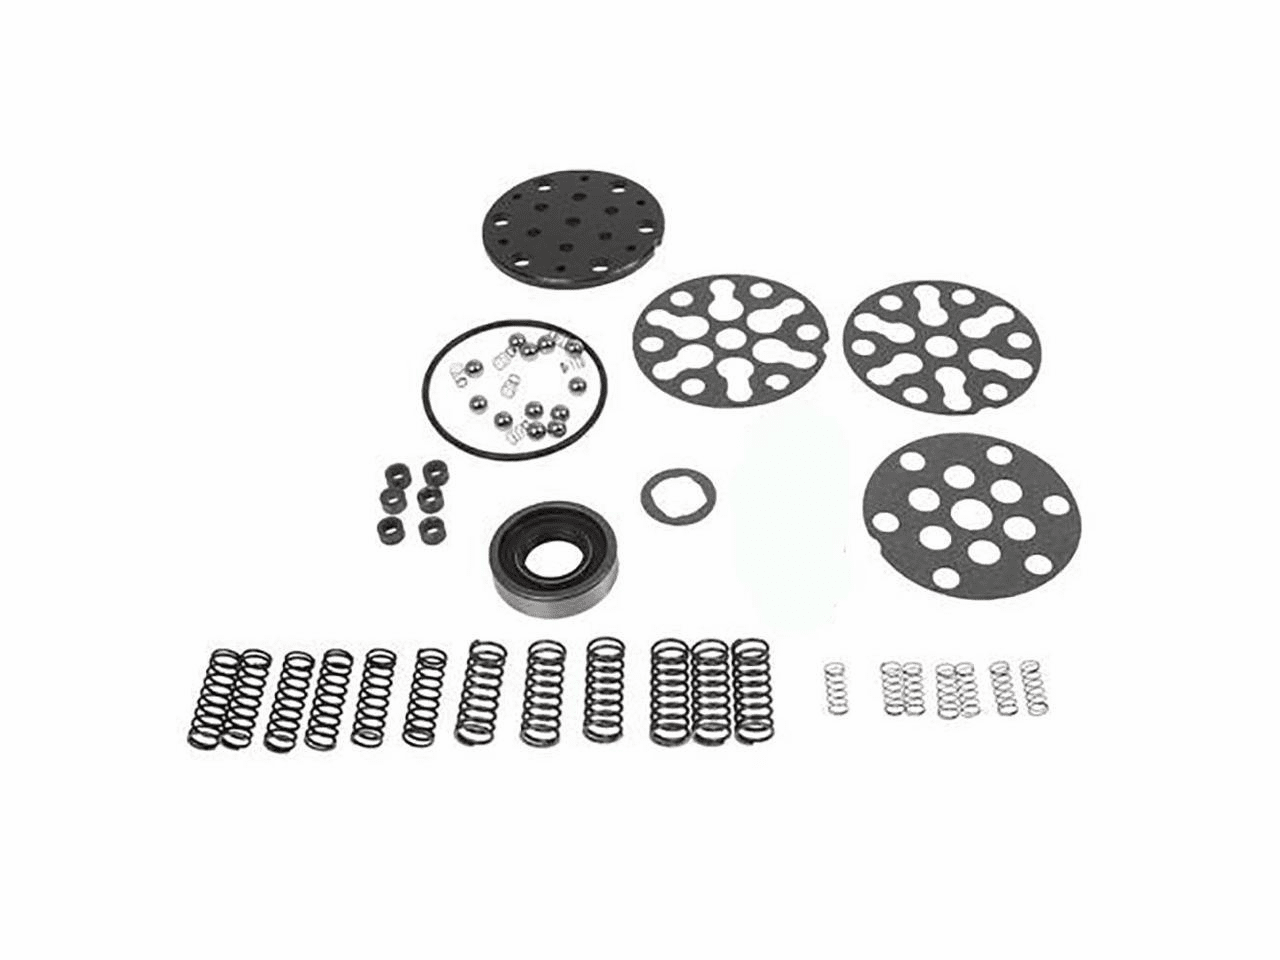 Ford Piston Pump Repair Kit for models NAA-901